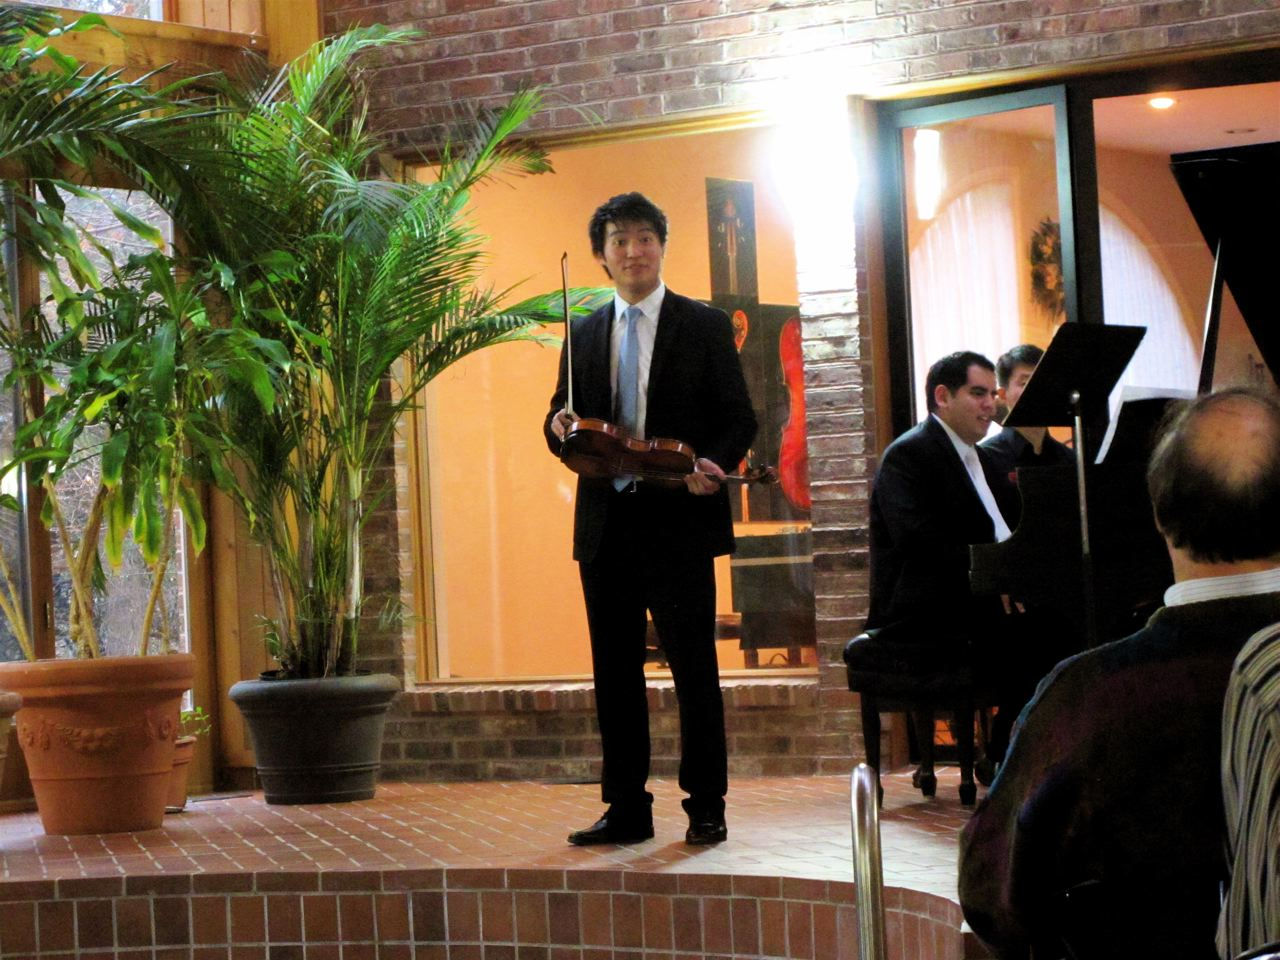 Sony recording artist Ray Chen, winner of the Queen Elisabeth Competition 2009, with Julio Elizalde at the piano